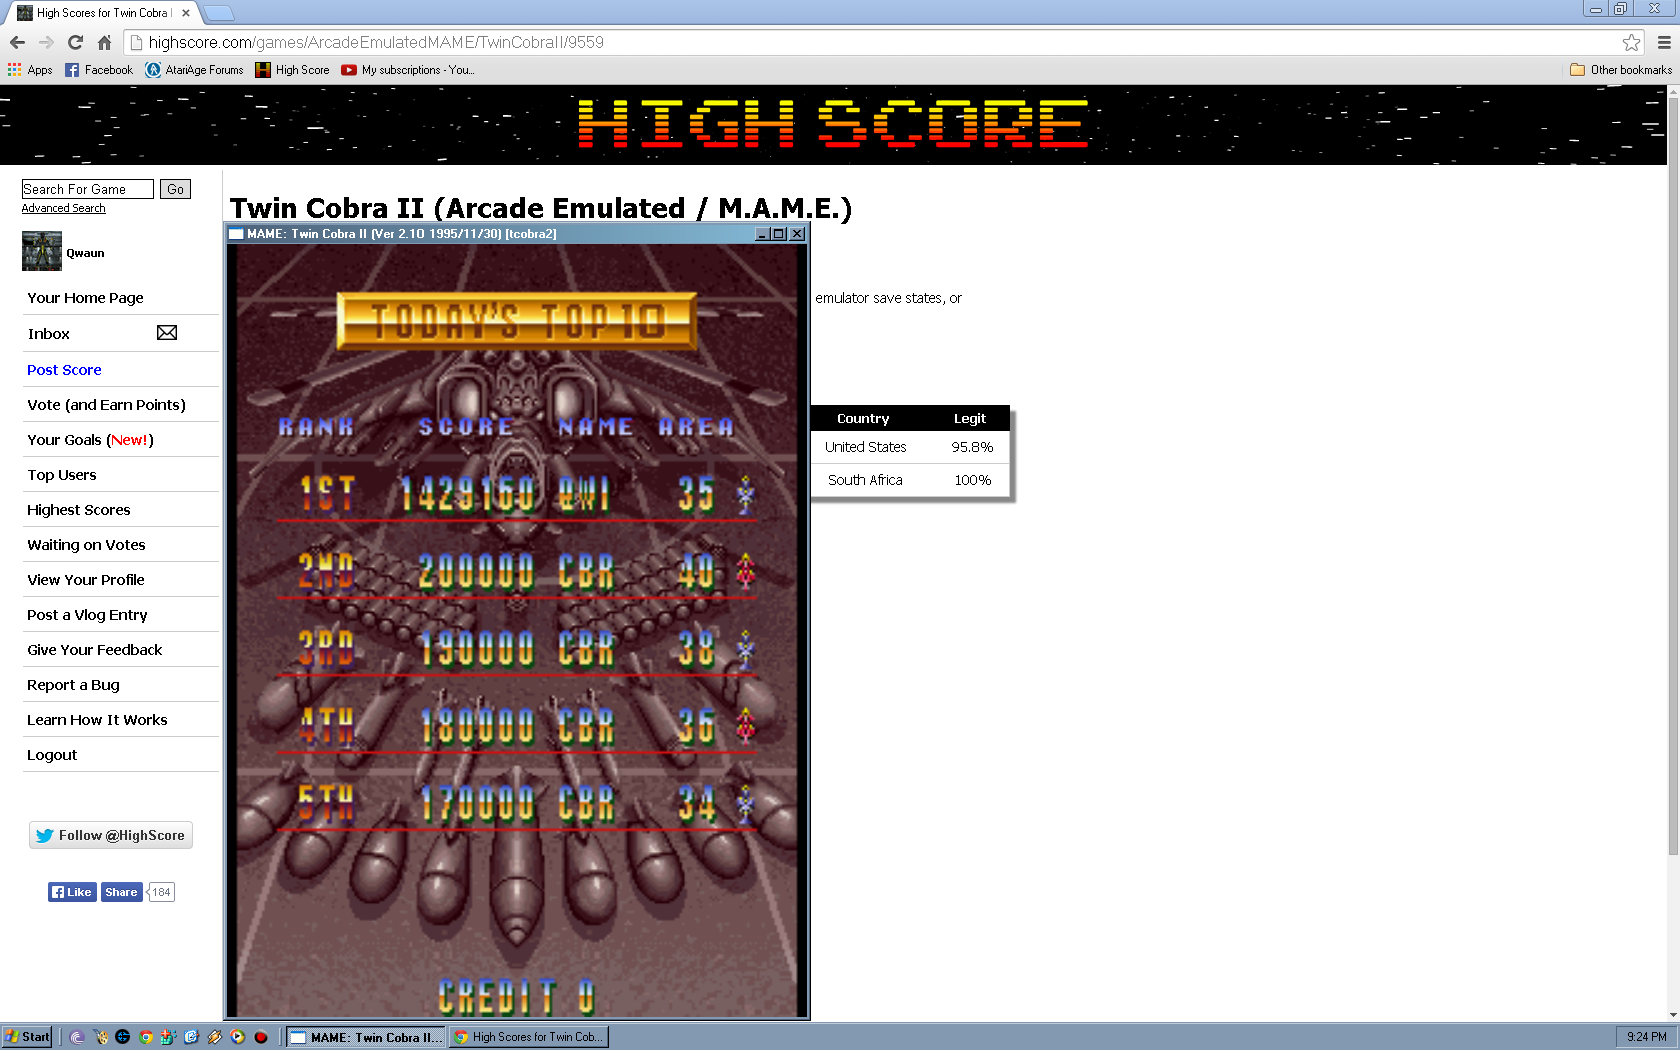 Qwaun: Twin Cobra II (Arcade Emulated / M.A.M.E.) 1,429,160 points on 2014-05-05 20:27:40